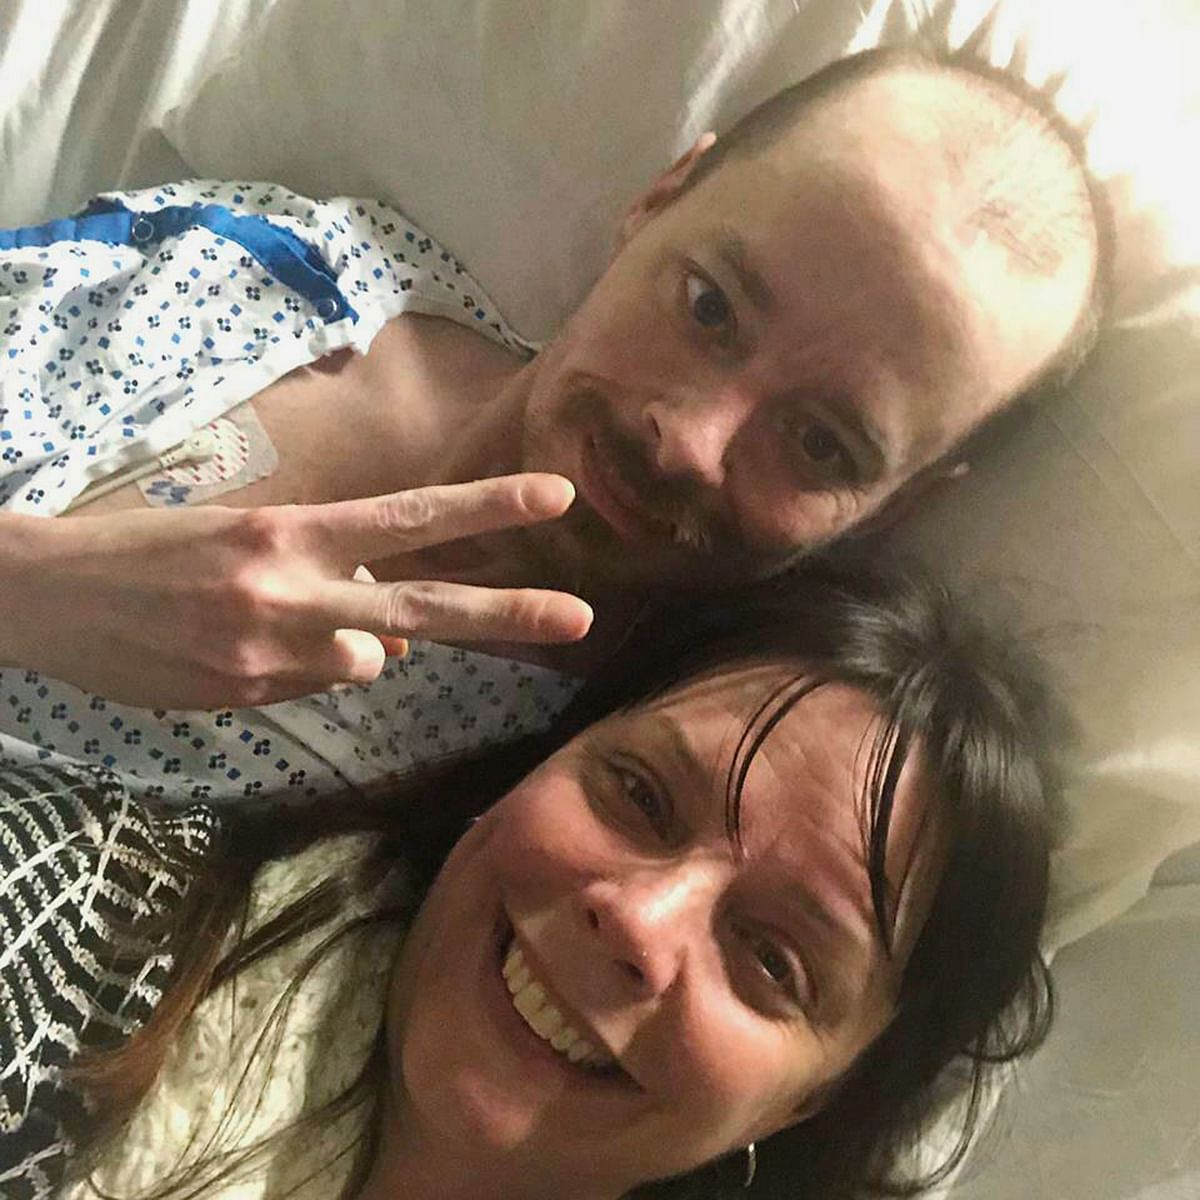 Bridgette Hoskie and her brother Jay Barrett  pose for the photo inside an ICU at Yale New Haven Hospital in New Haven, Connecticut on 26 February, 2019.